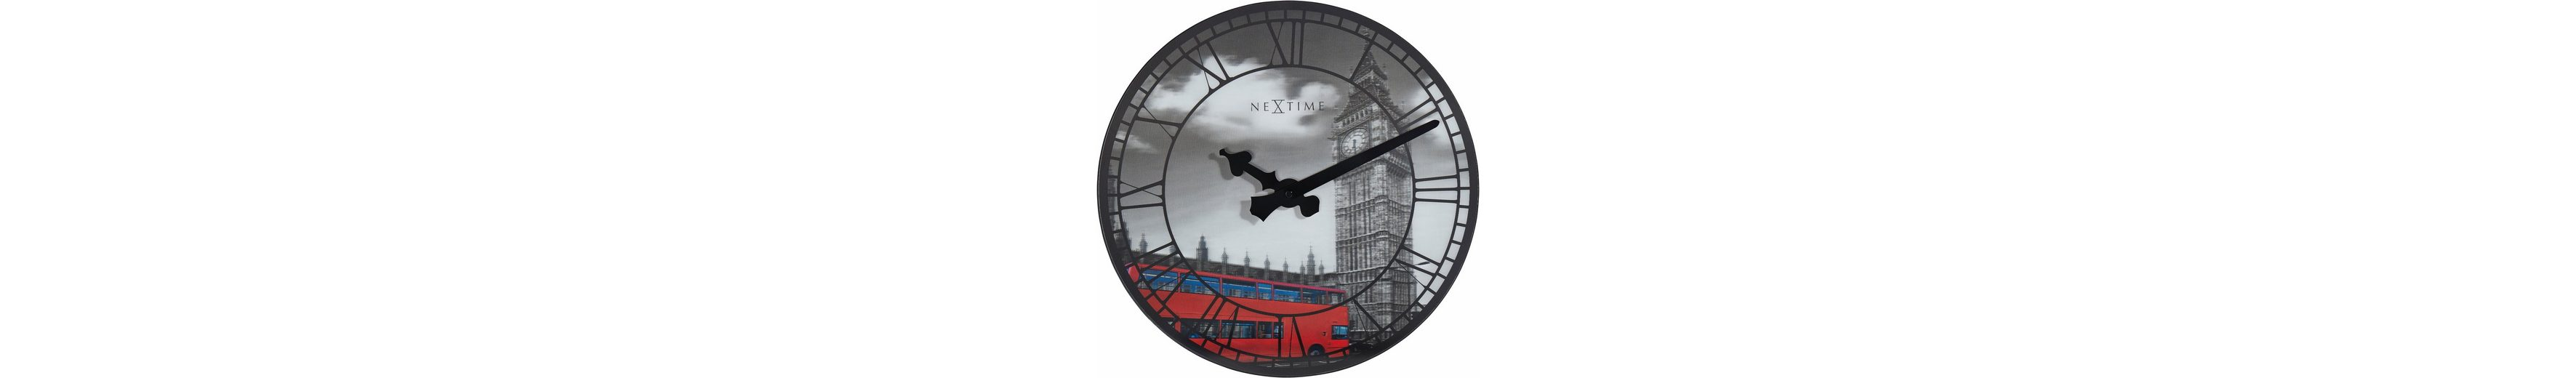 Home affaire Wanduhr, »BIG BEN 3D«